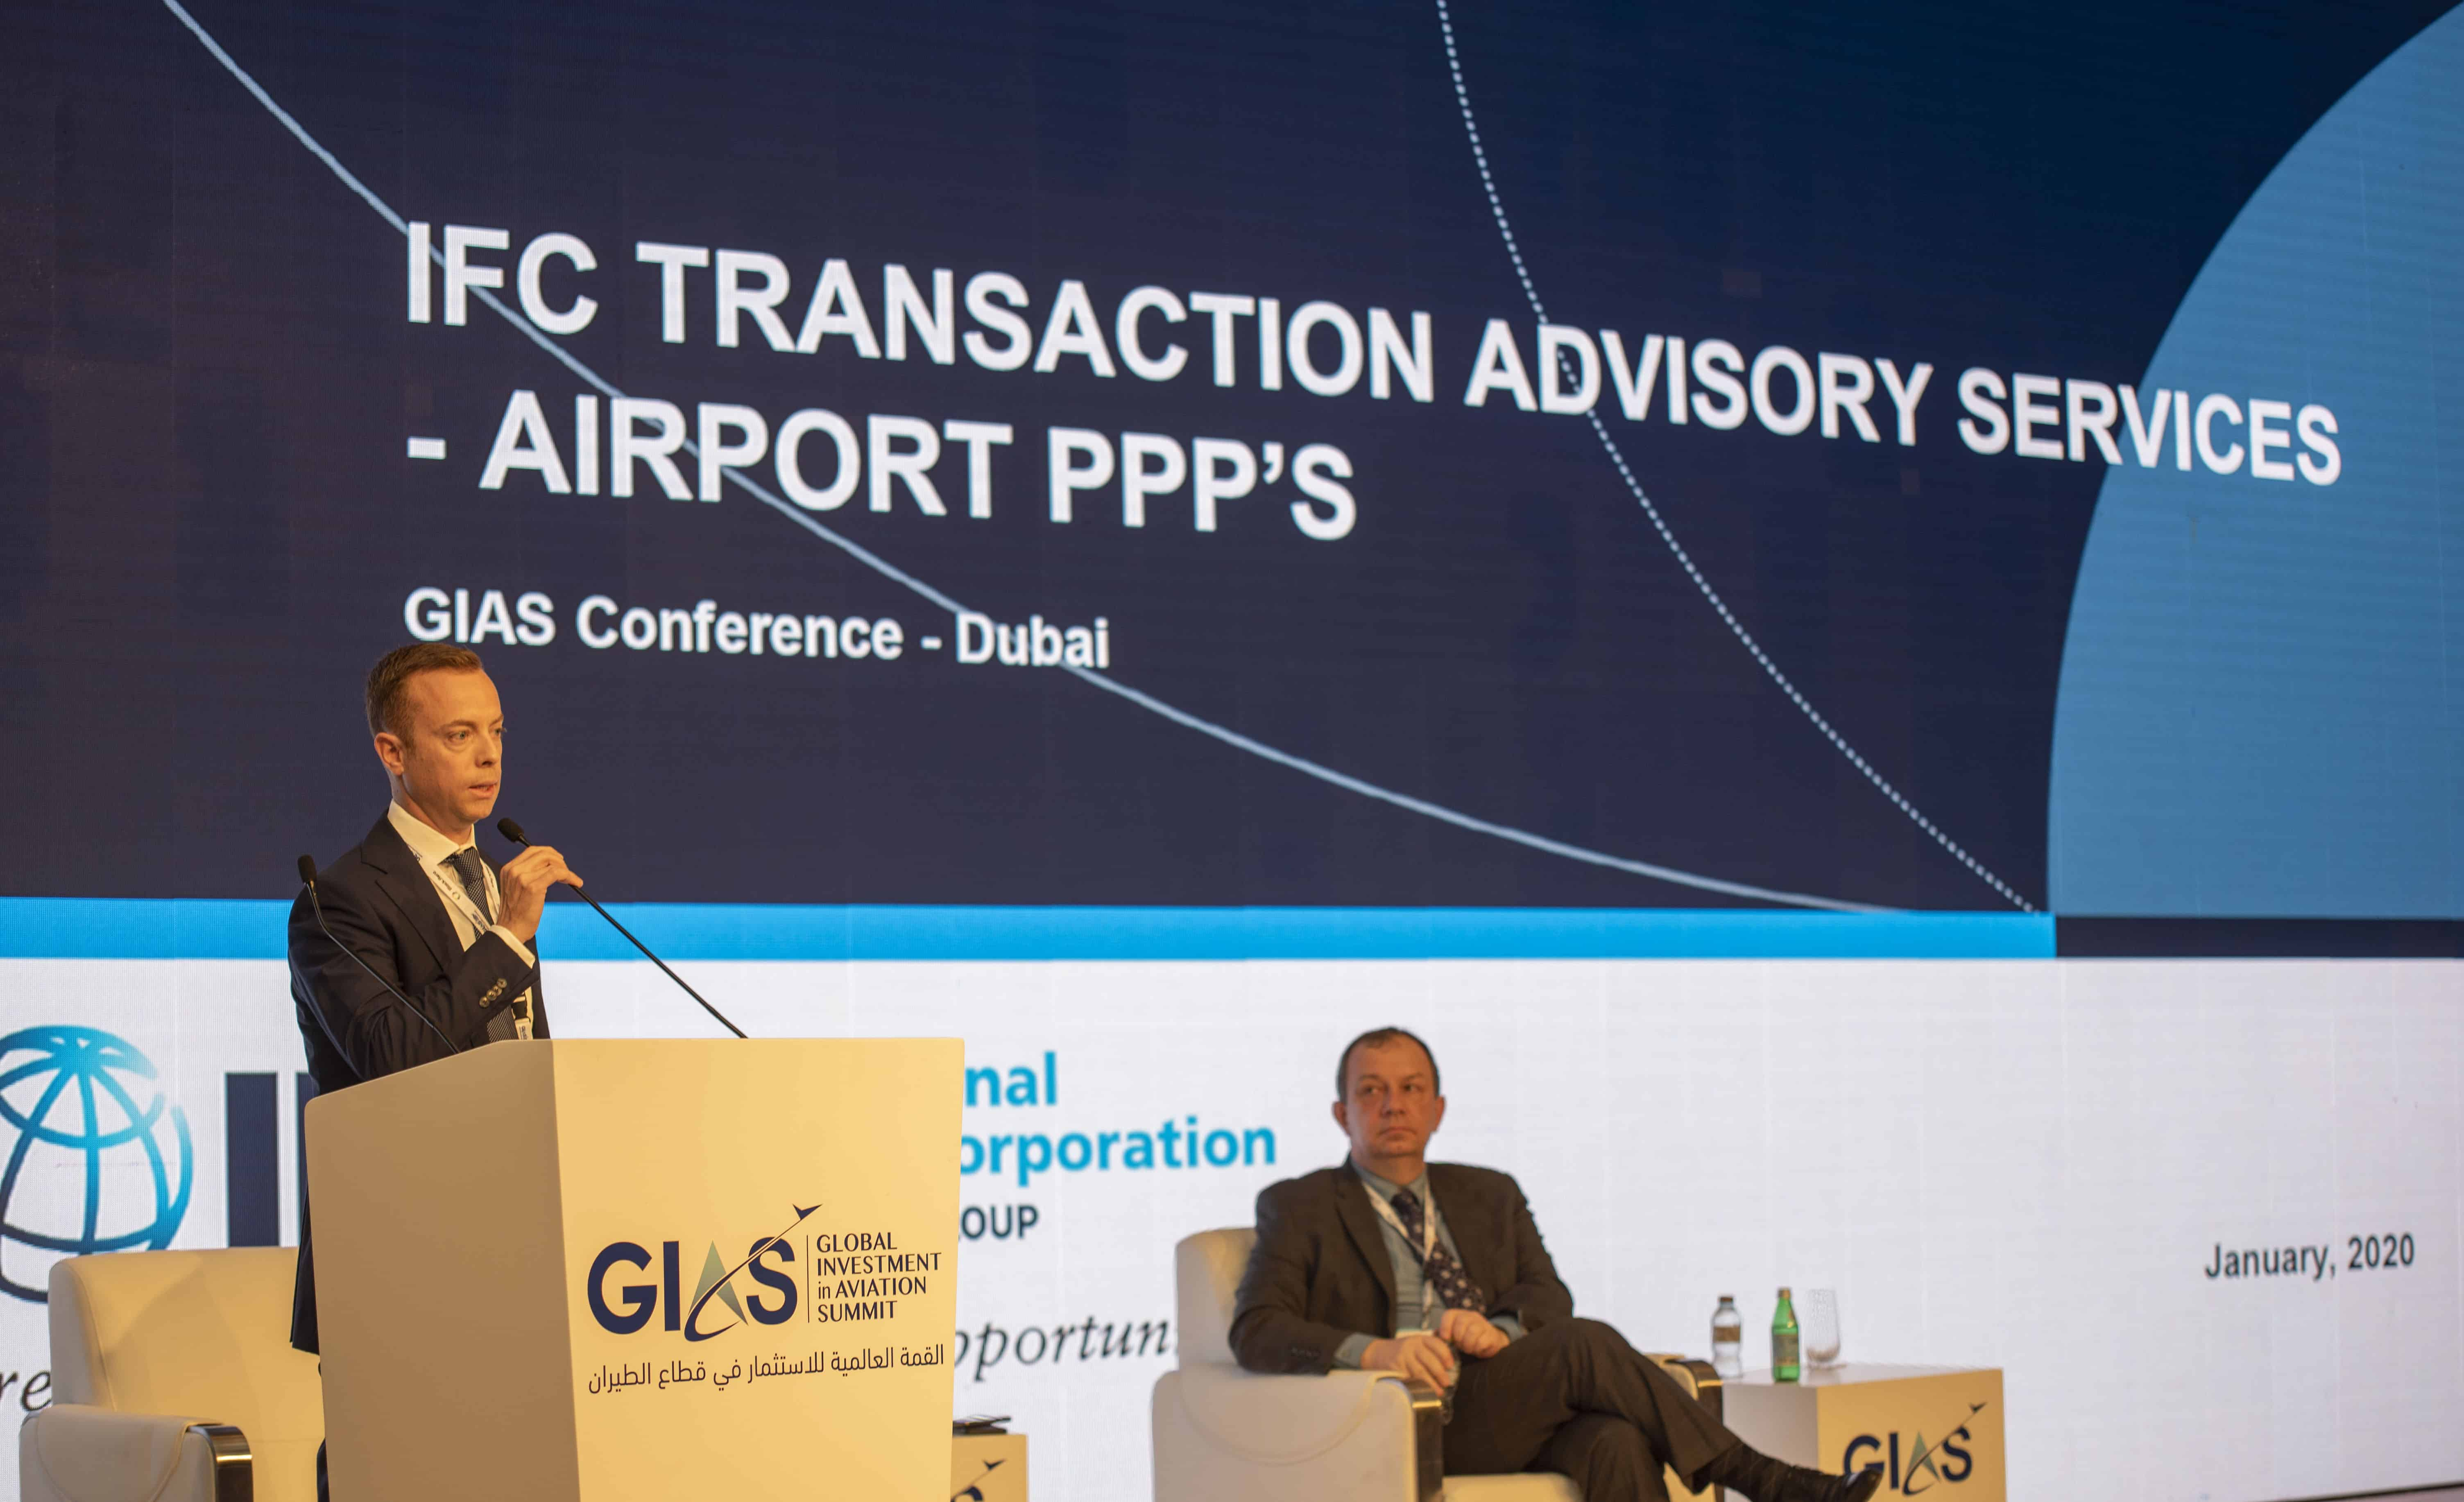 GIAS 2020 kicked off today in Dubai